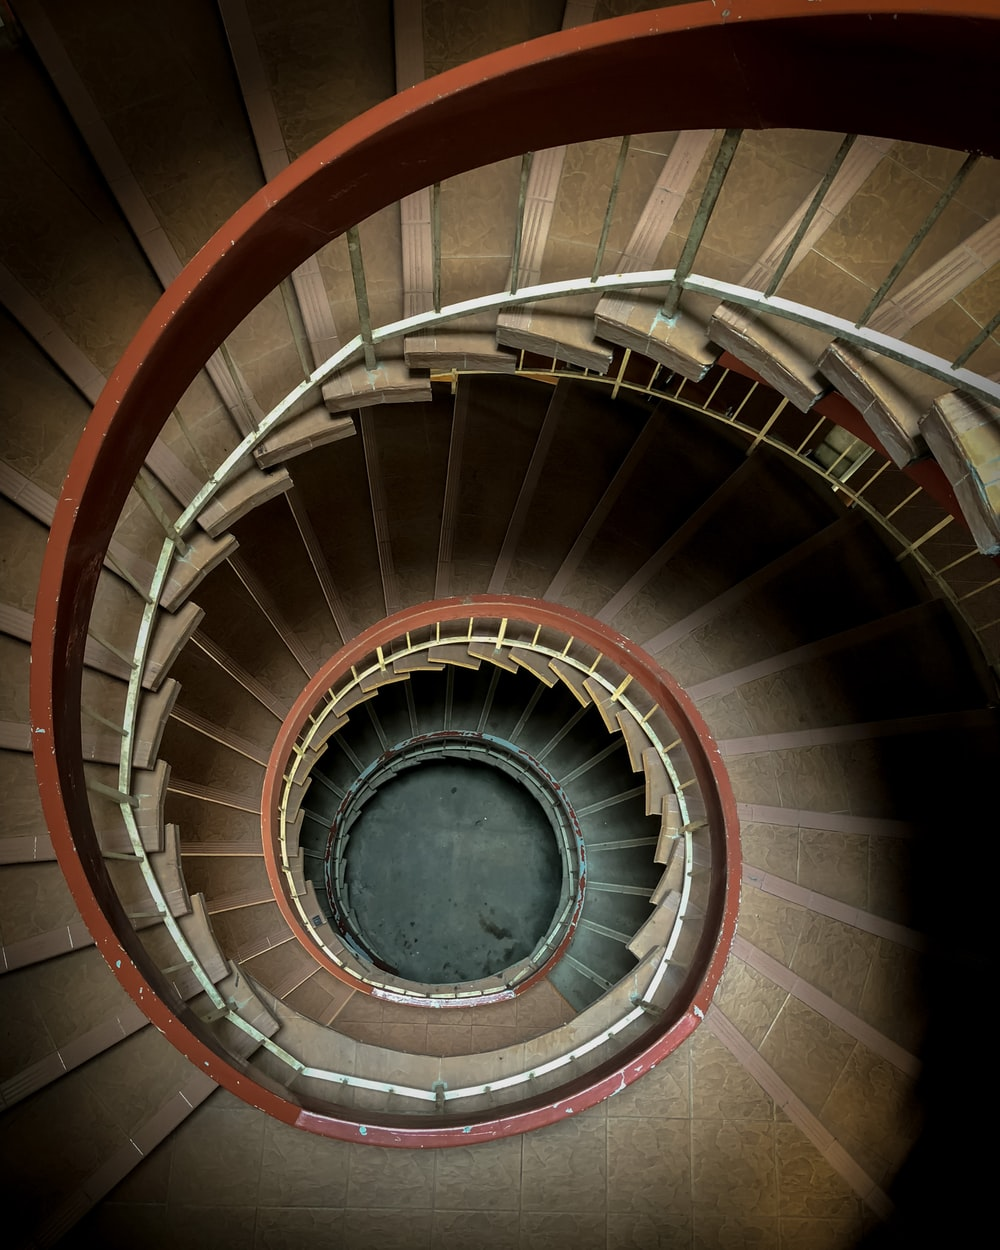 spiral staircase with white metal railings